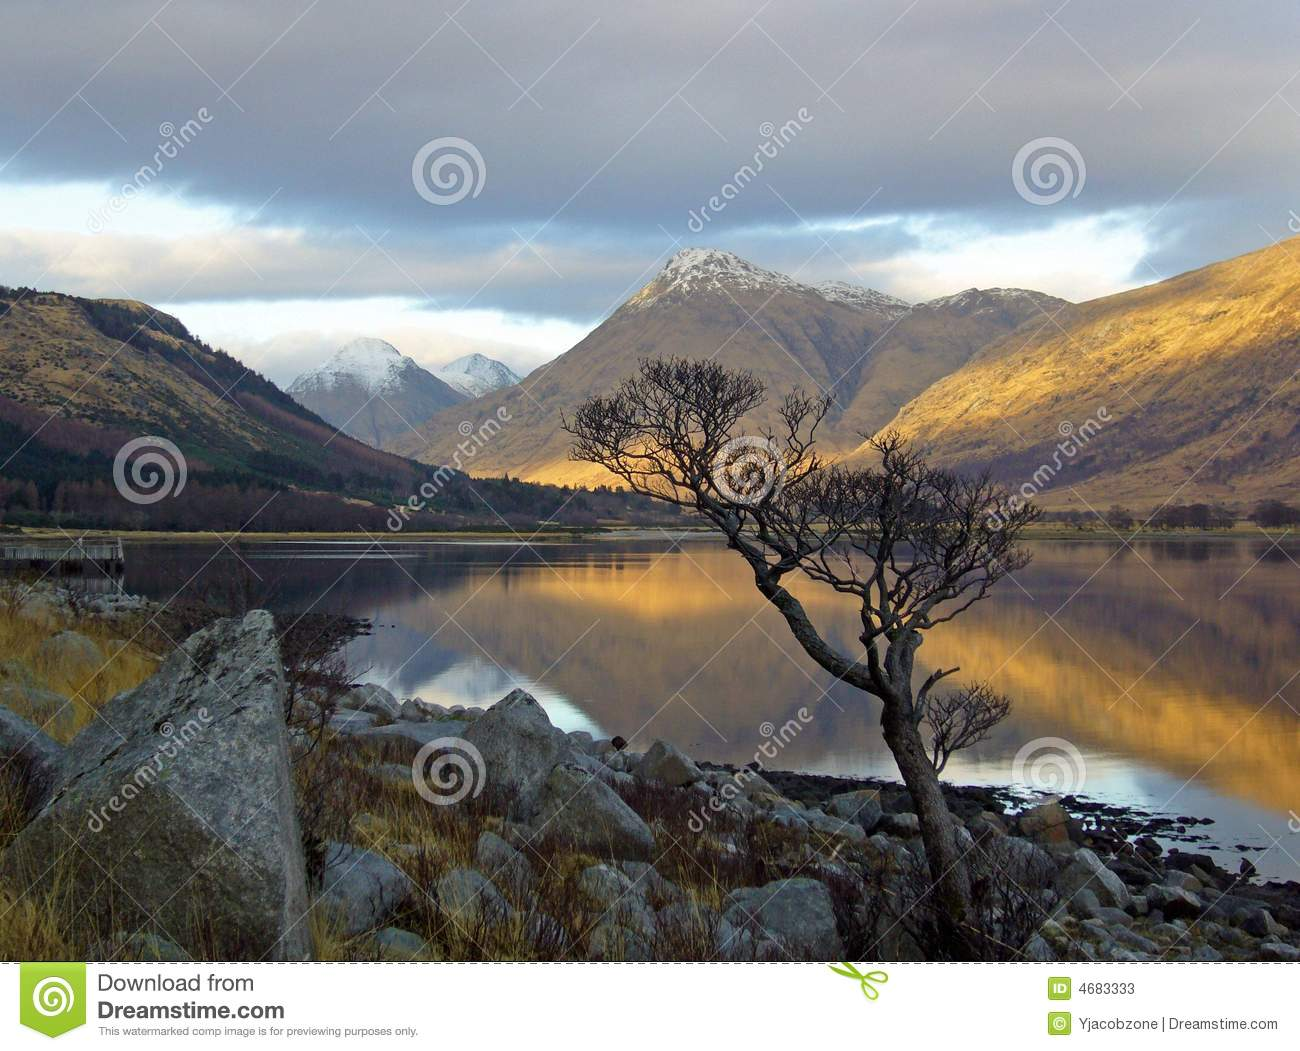 Loch Etive clipart #17, Download drawings